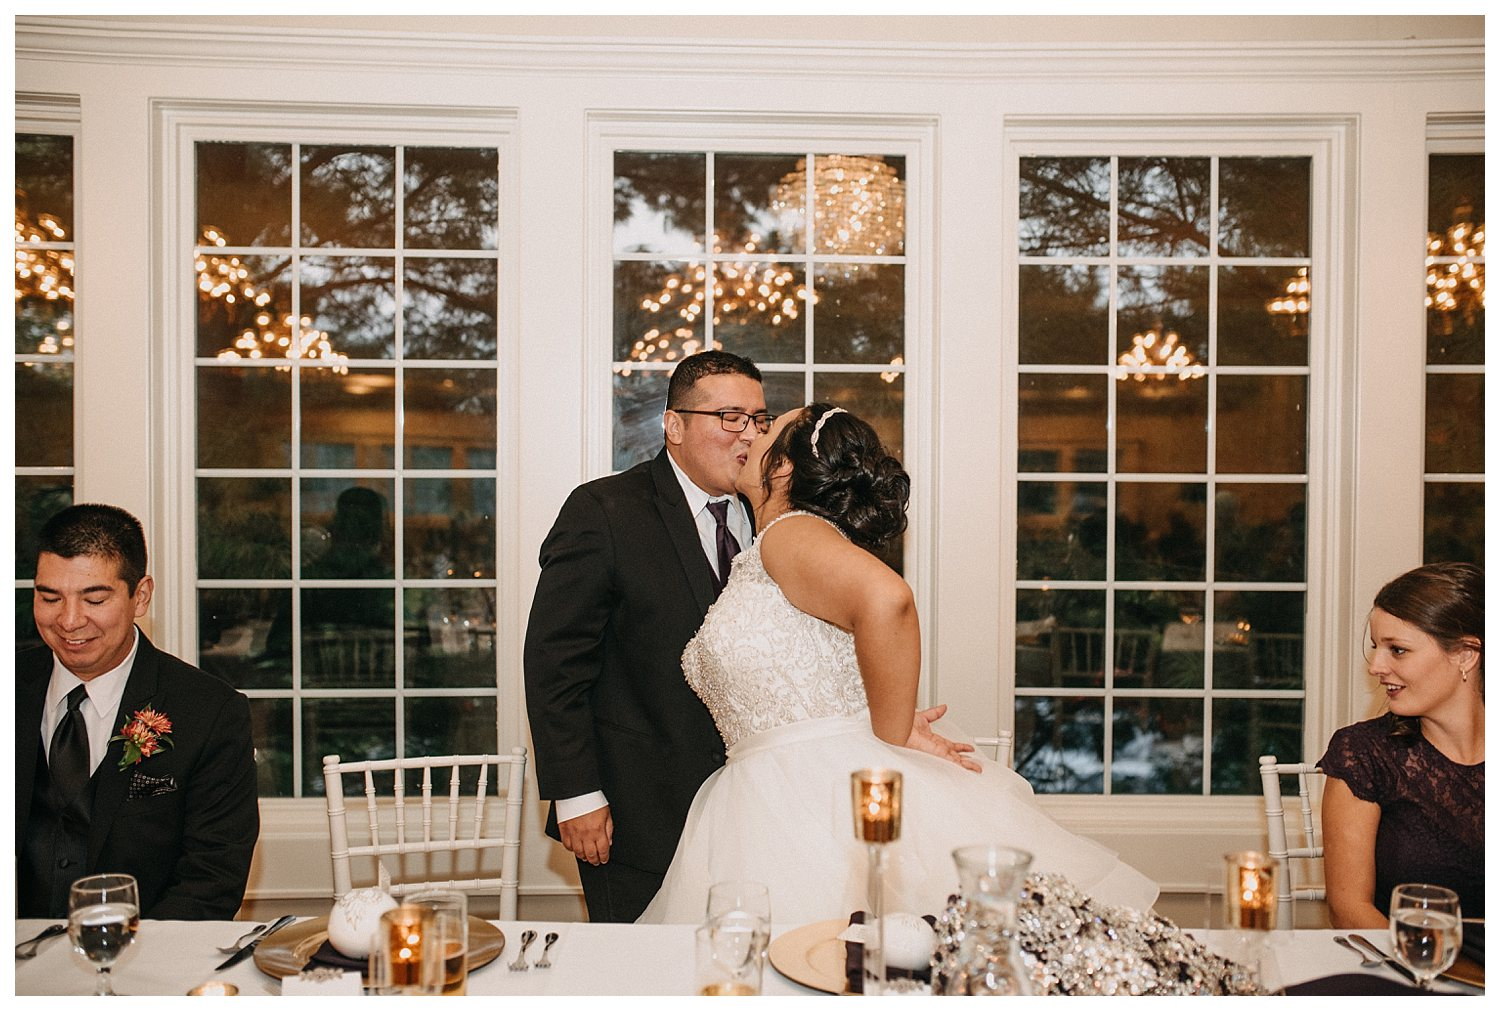 Kelsey_Diane_Photography_Hawthorne_House_Parkville_Kansas_City_Wedding_Veronica_Pat_0070.jpg